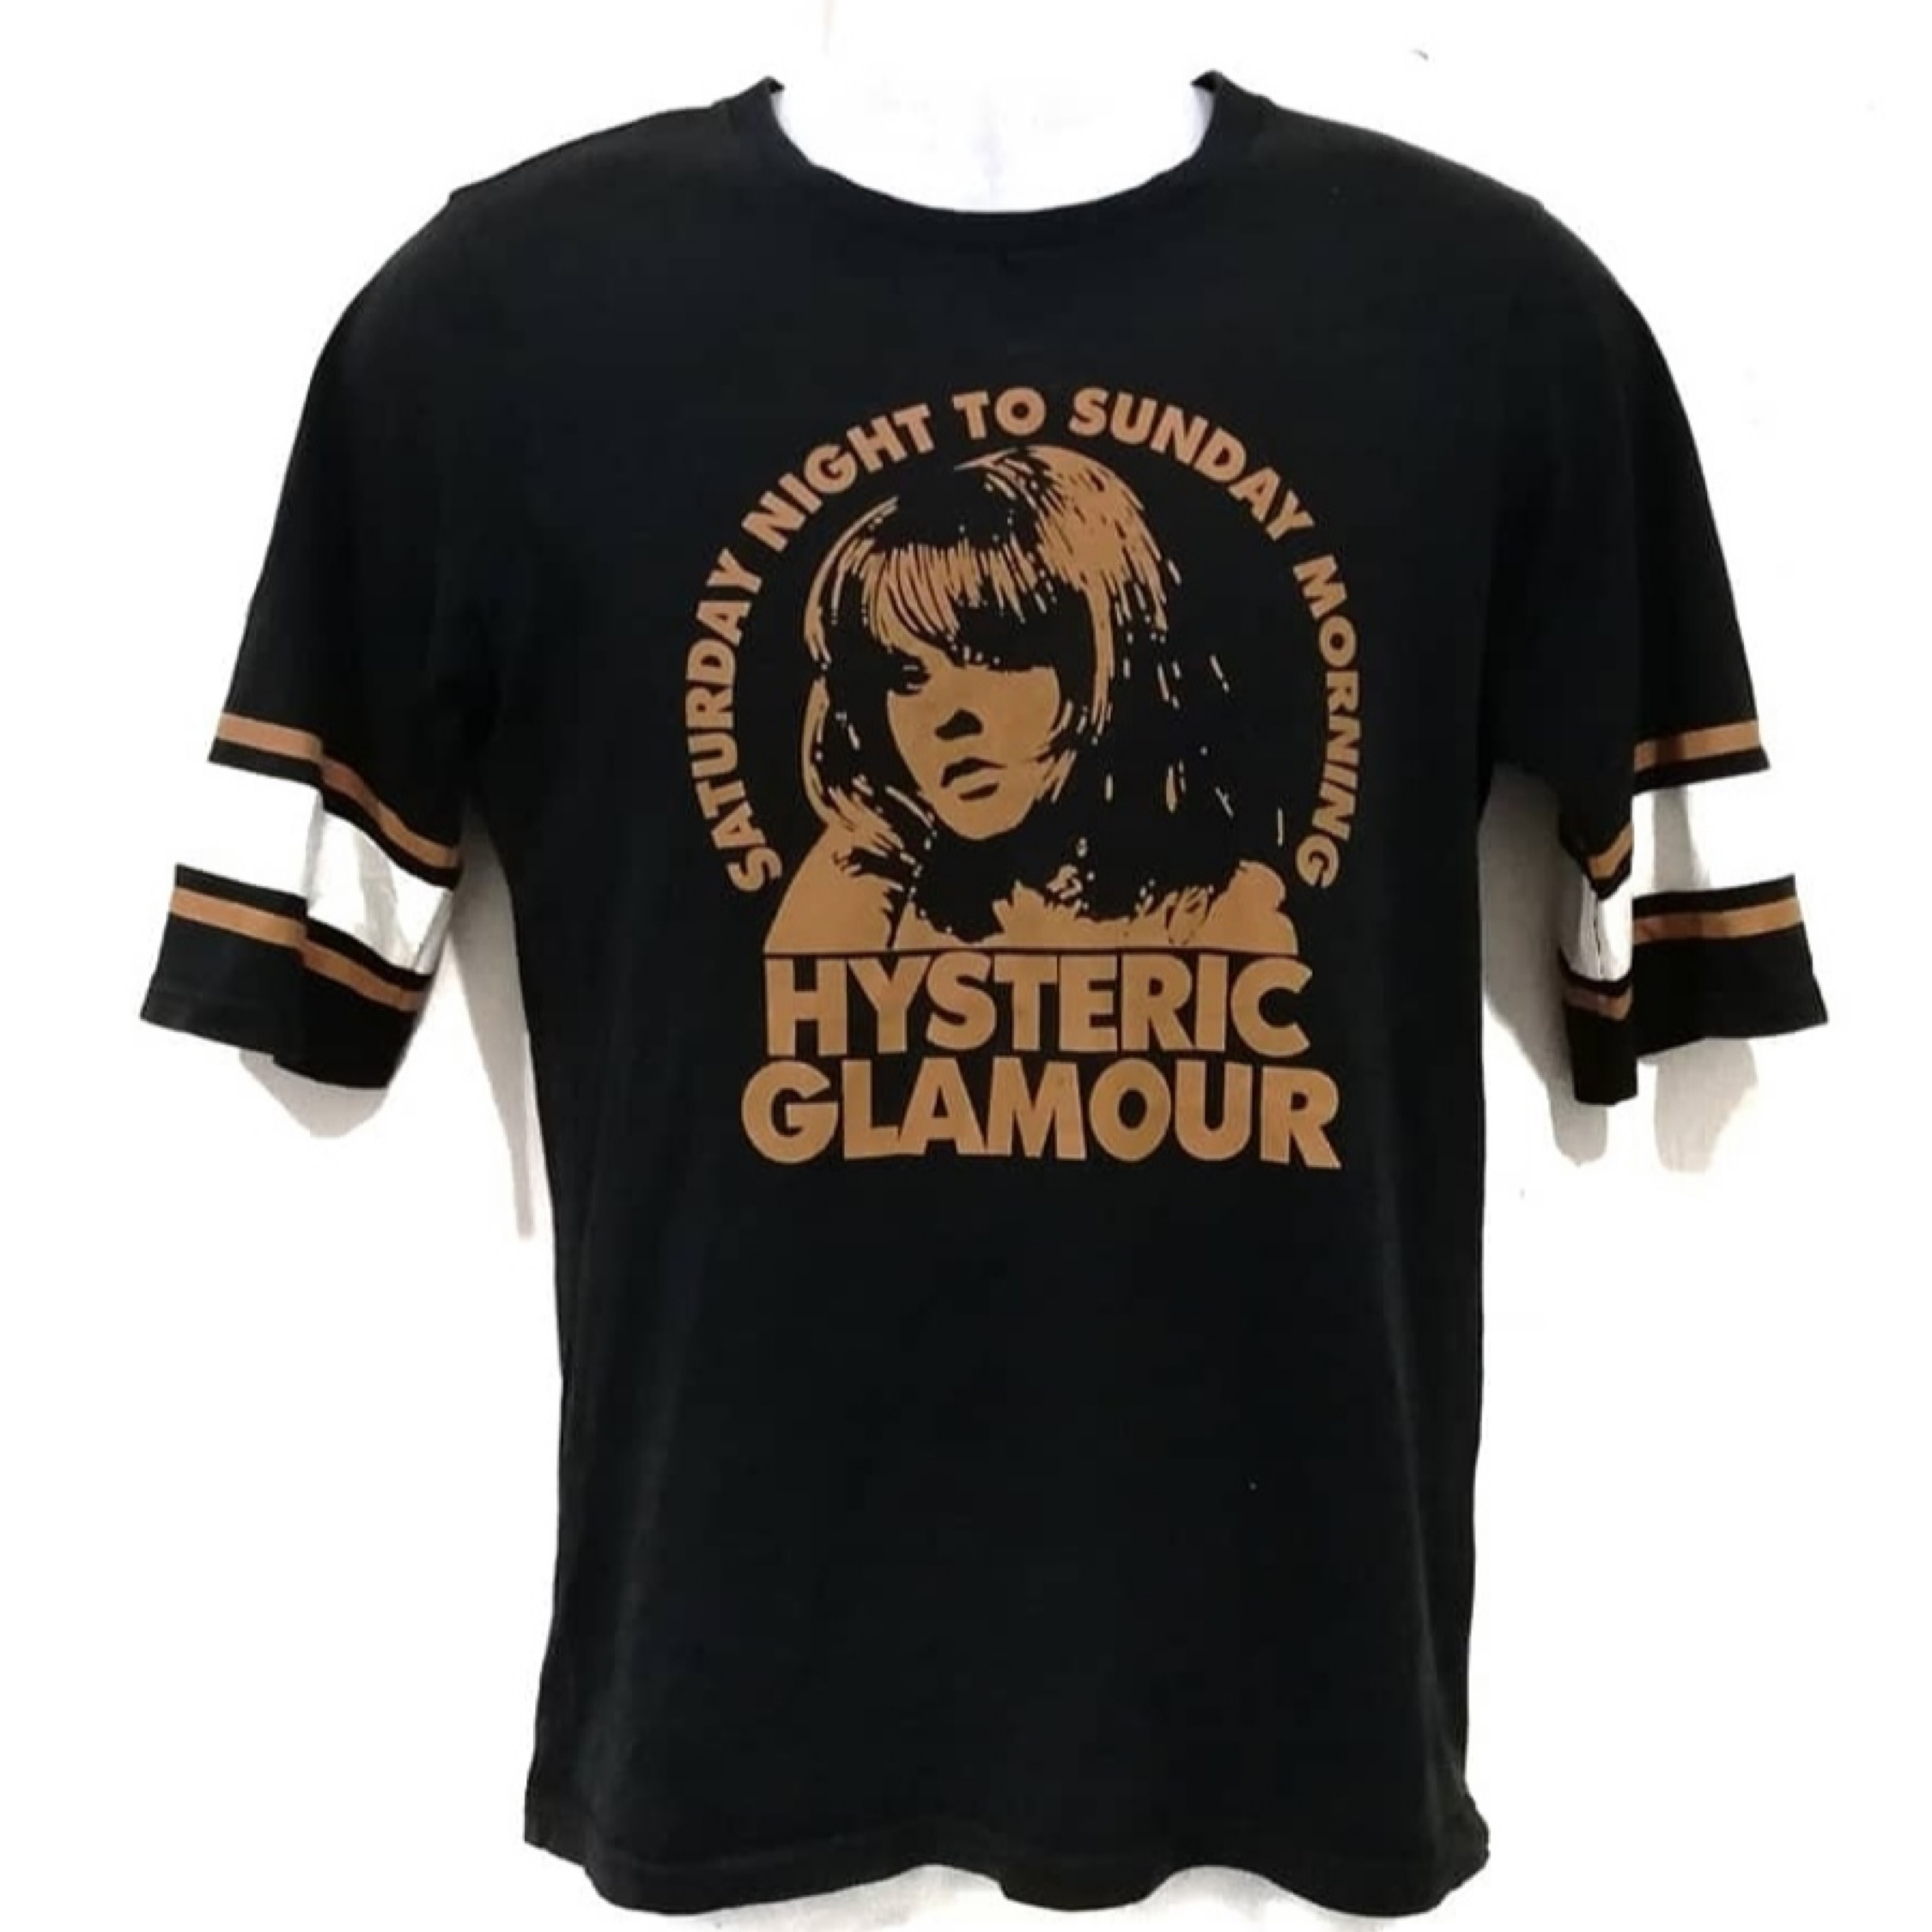 Hysteric Glamour Tee Size Small